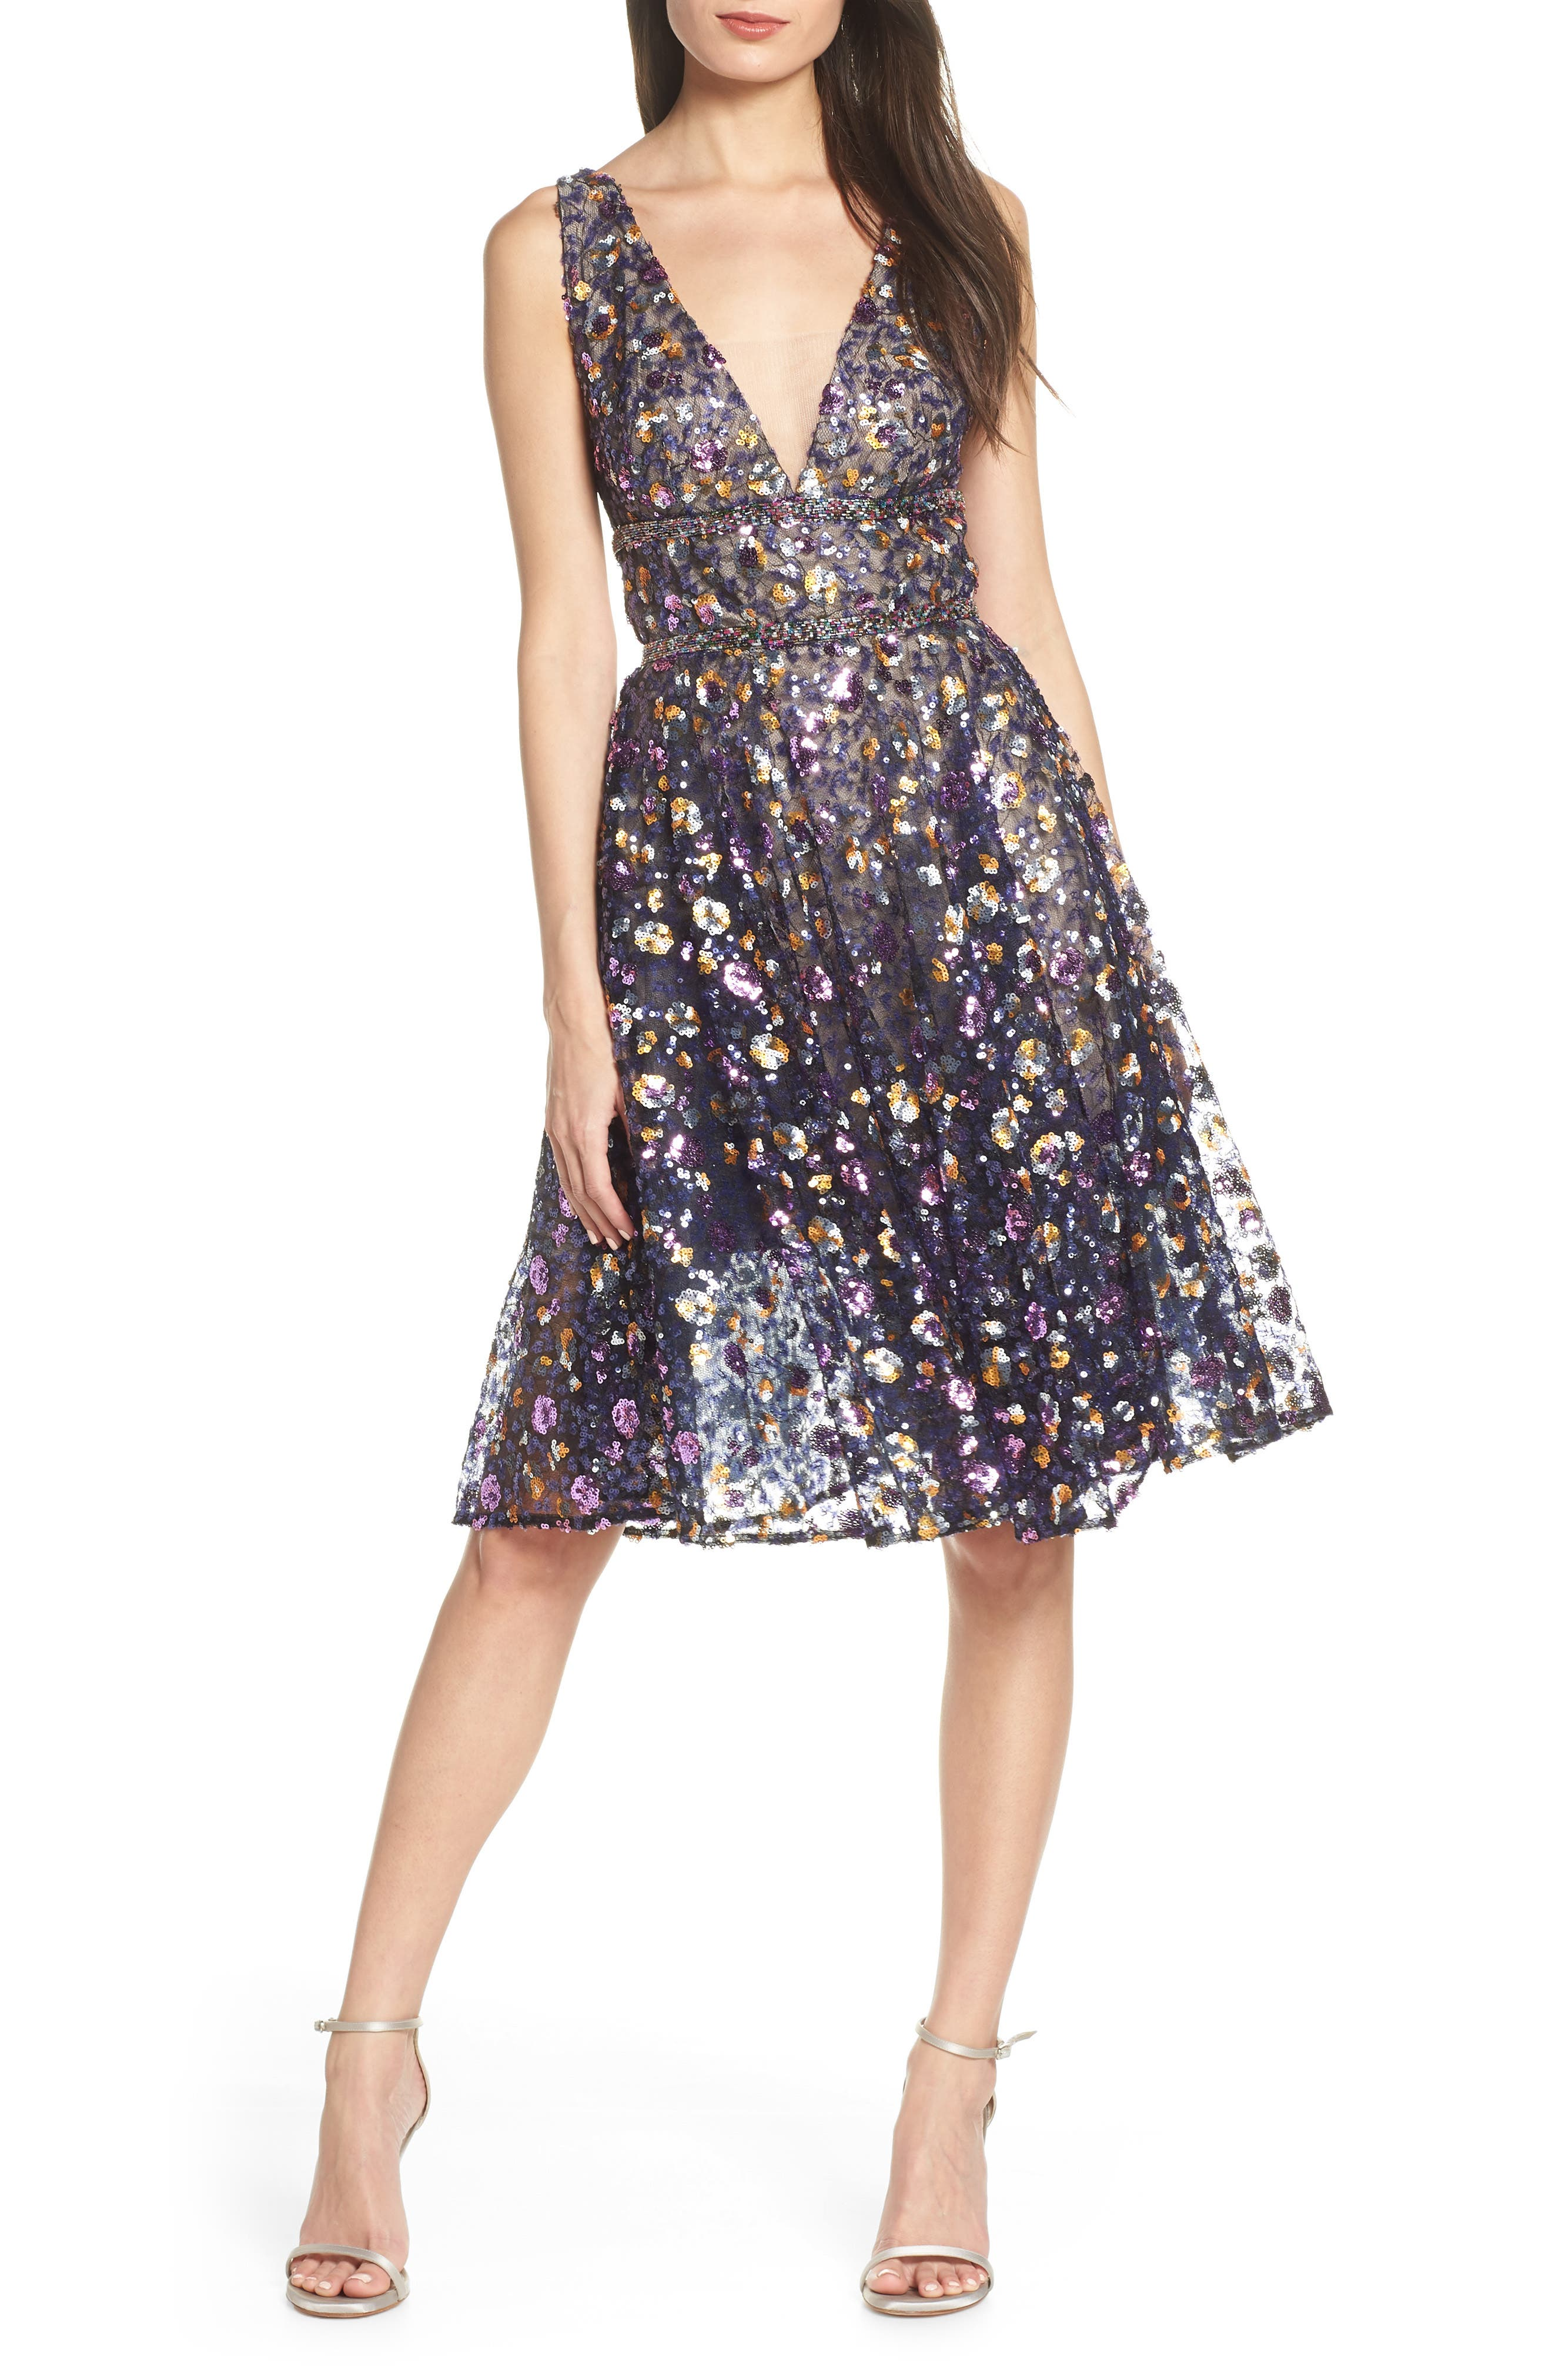 BRONX AND BANCO,                             Sequin Fit & Flare Dress,                             Main thumbnail 1, color,                             MULTICOLOR